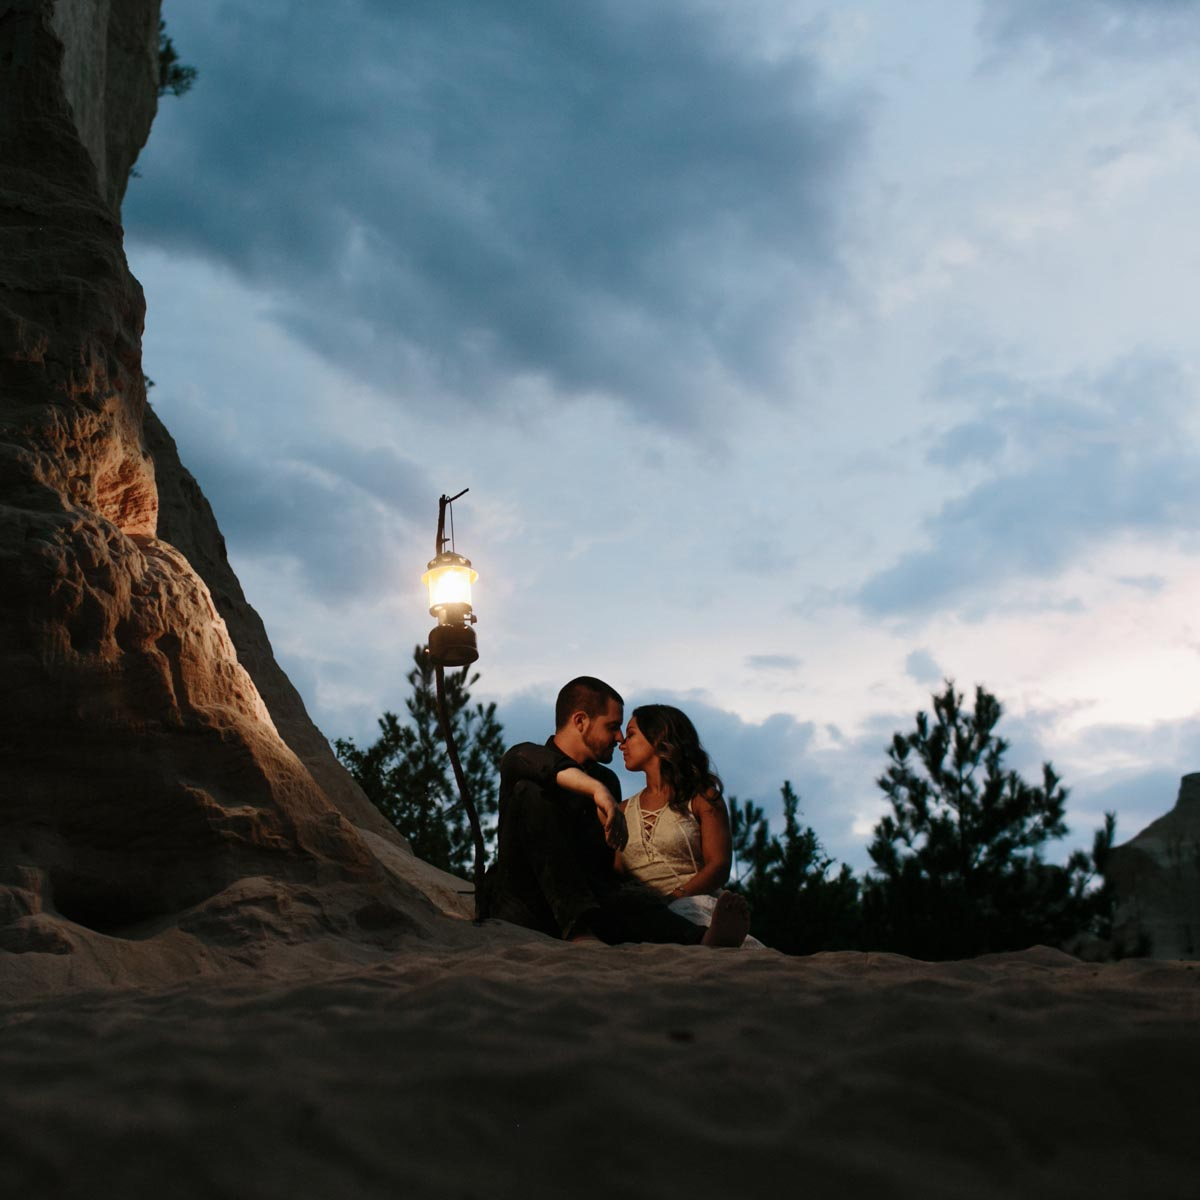 moody creative adventure engagement photos with lantern